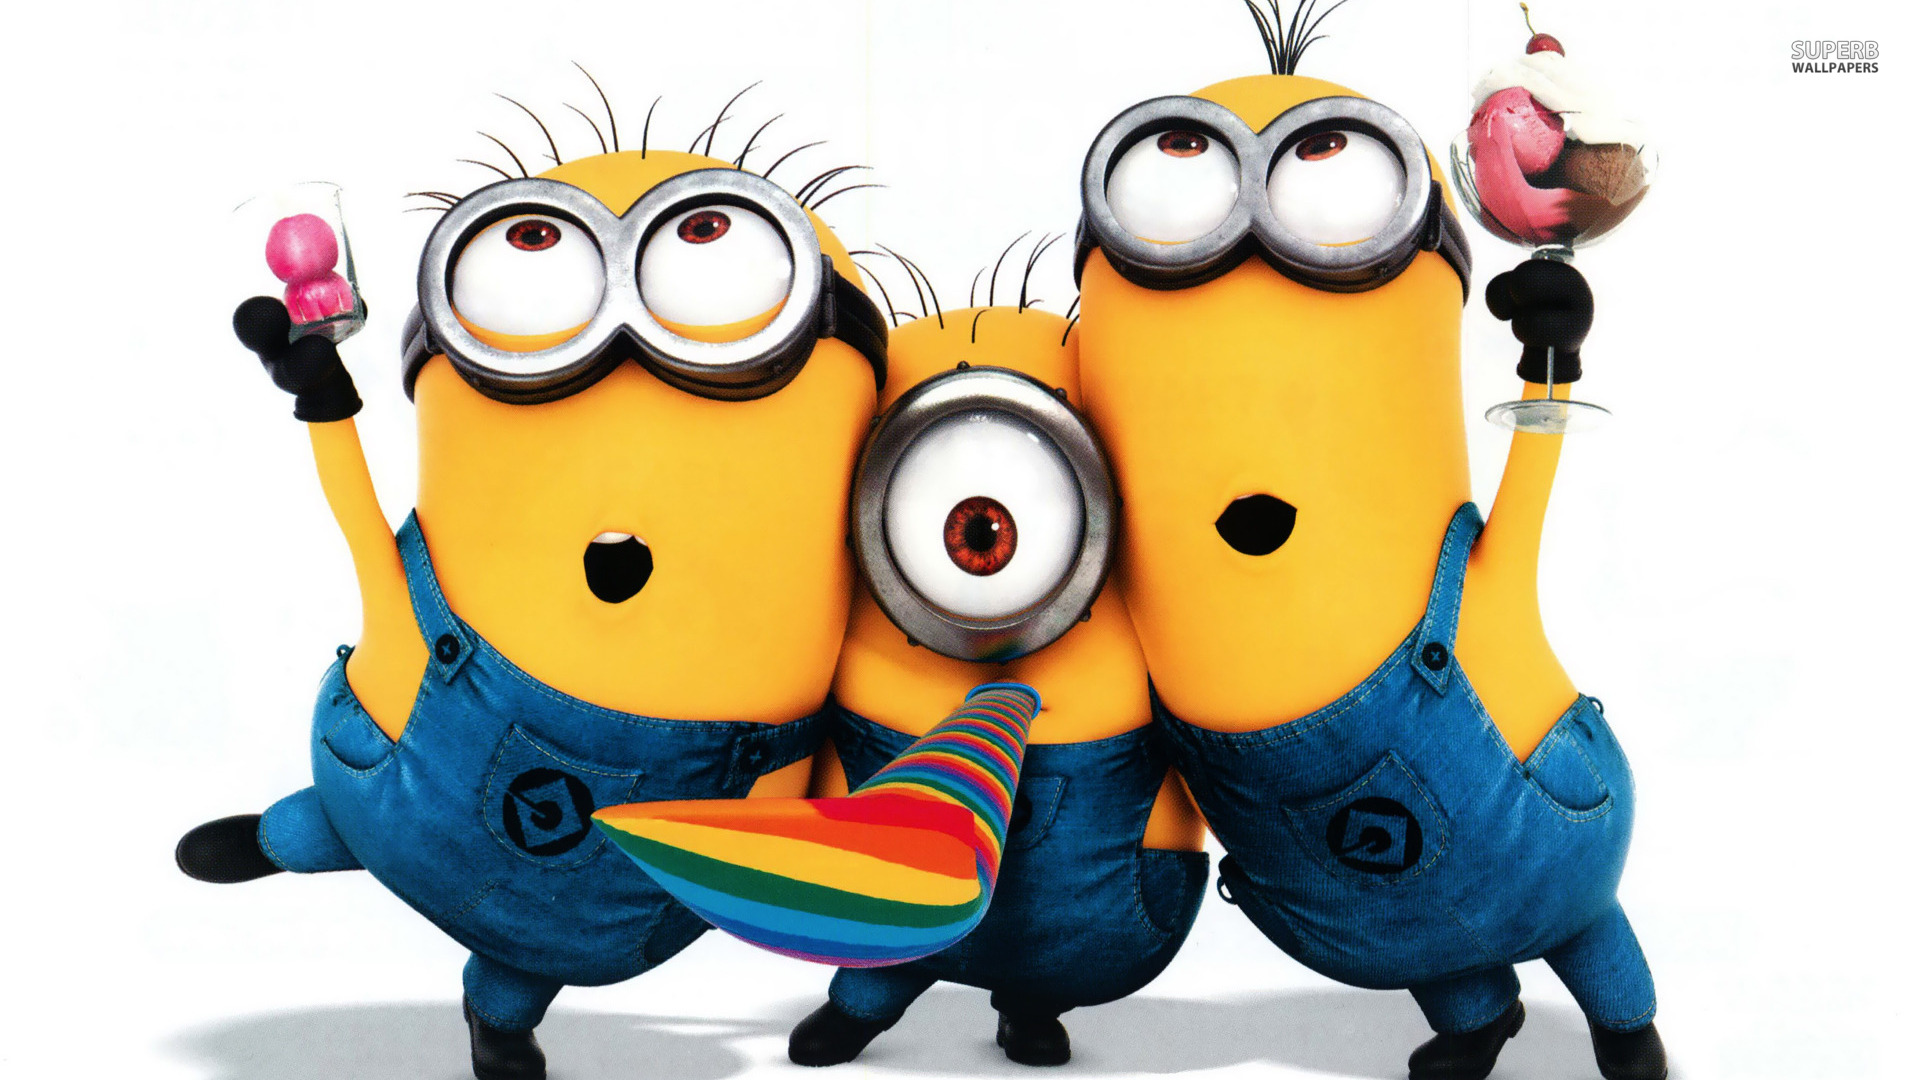 Despicable me 3 clipart free stock Free Despicable Me 2 Cliparts, Download Free Clip Art, Free Clip Art ... free stock